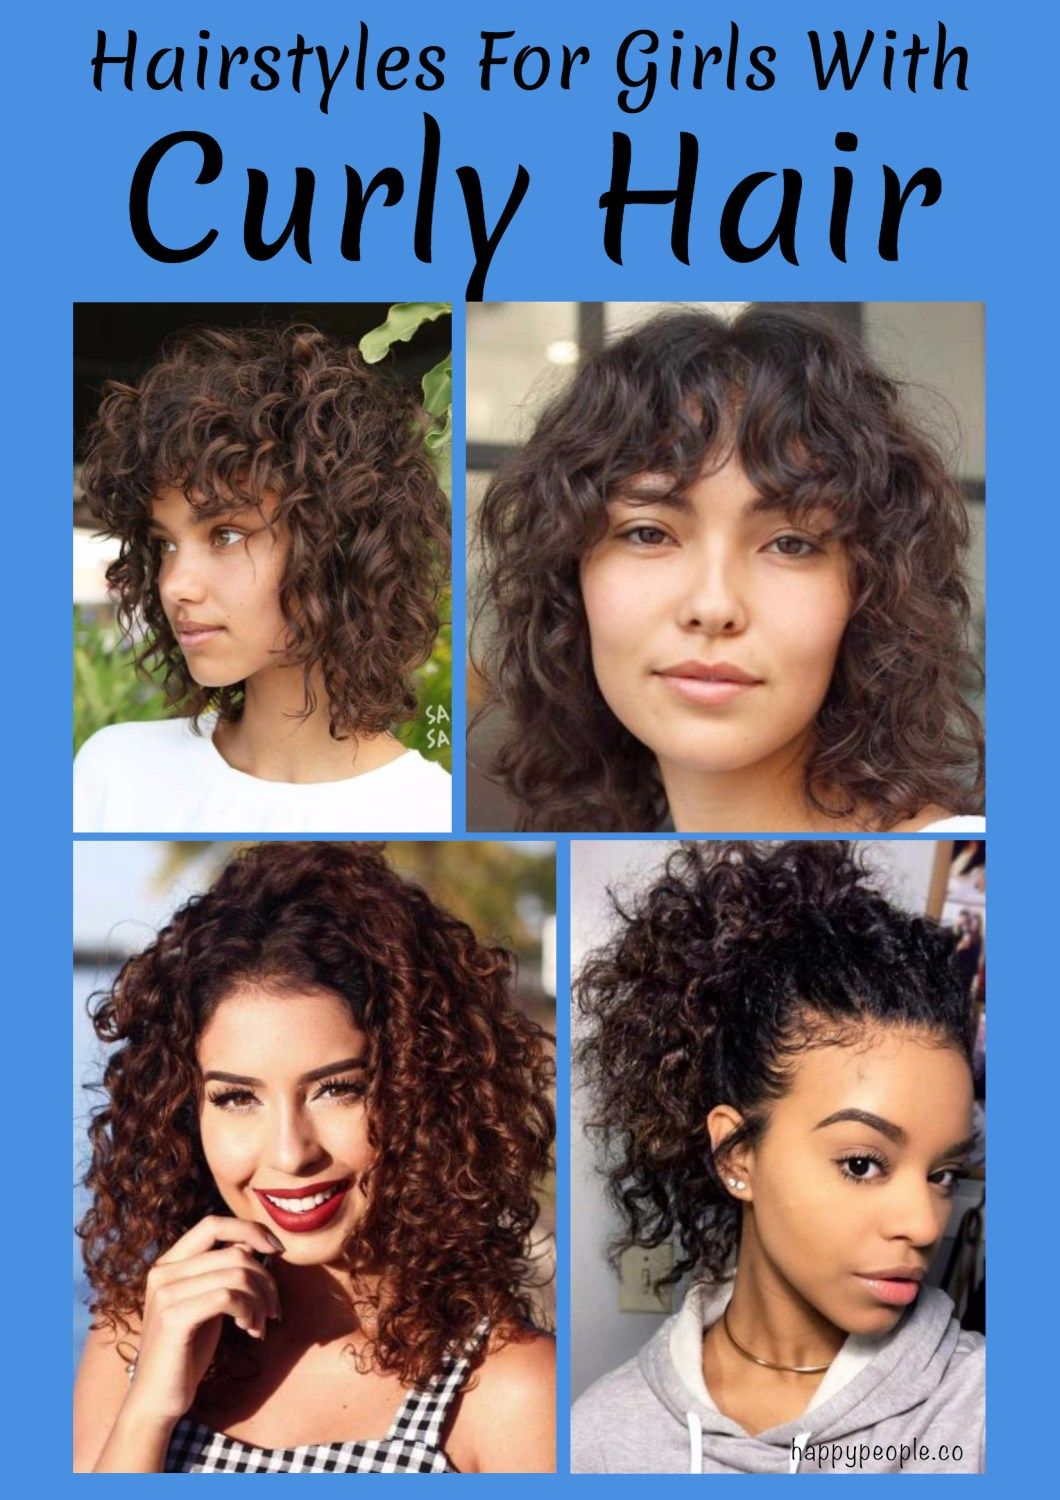 21 hairstyles for girls with curly hair | thikk hair | curly